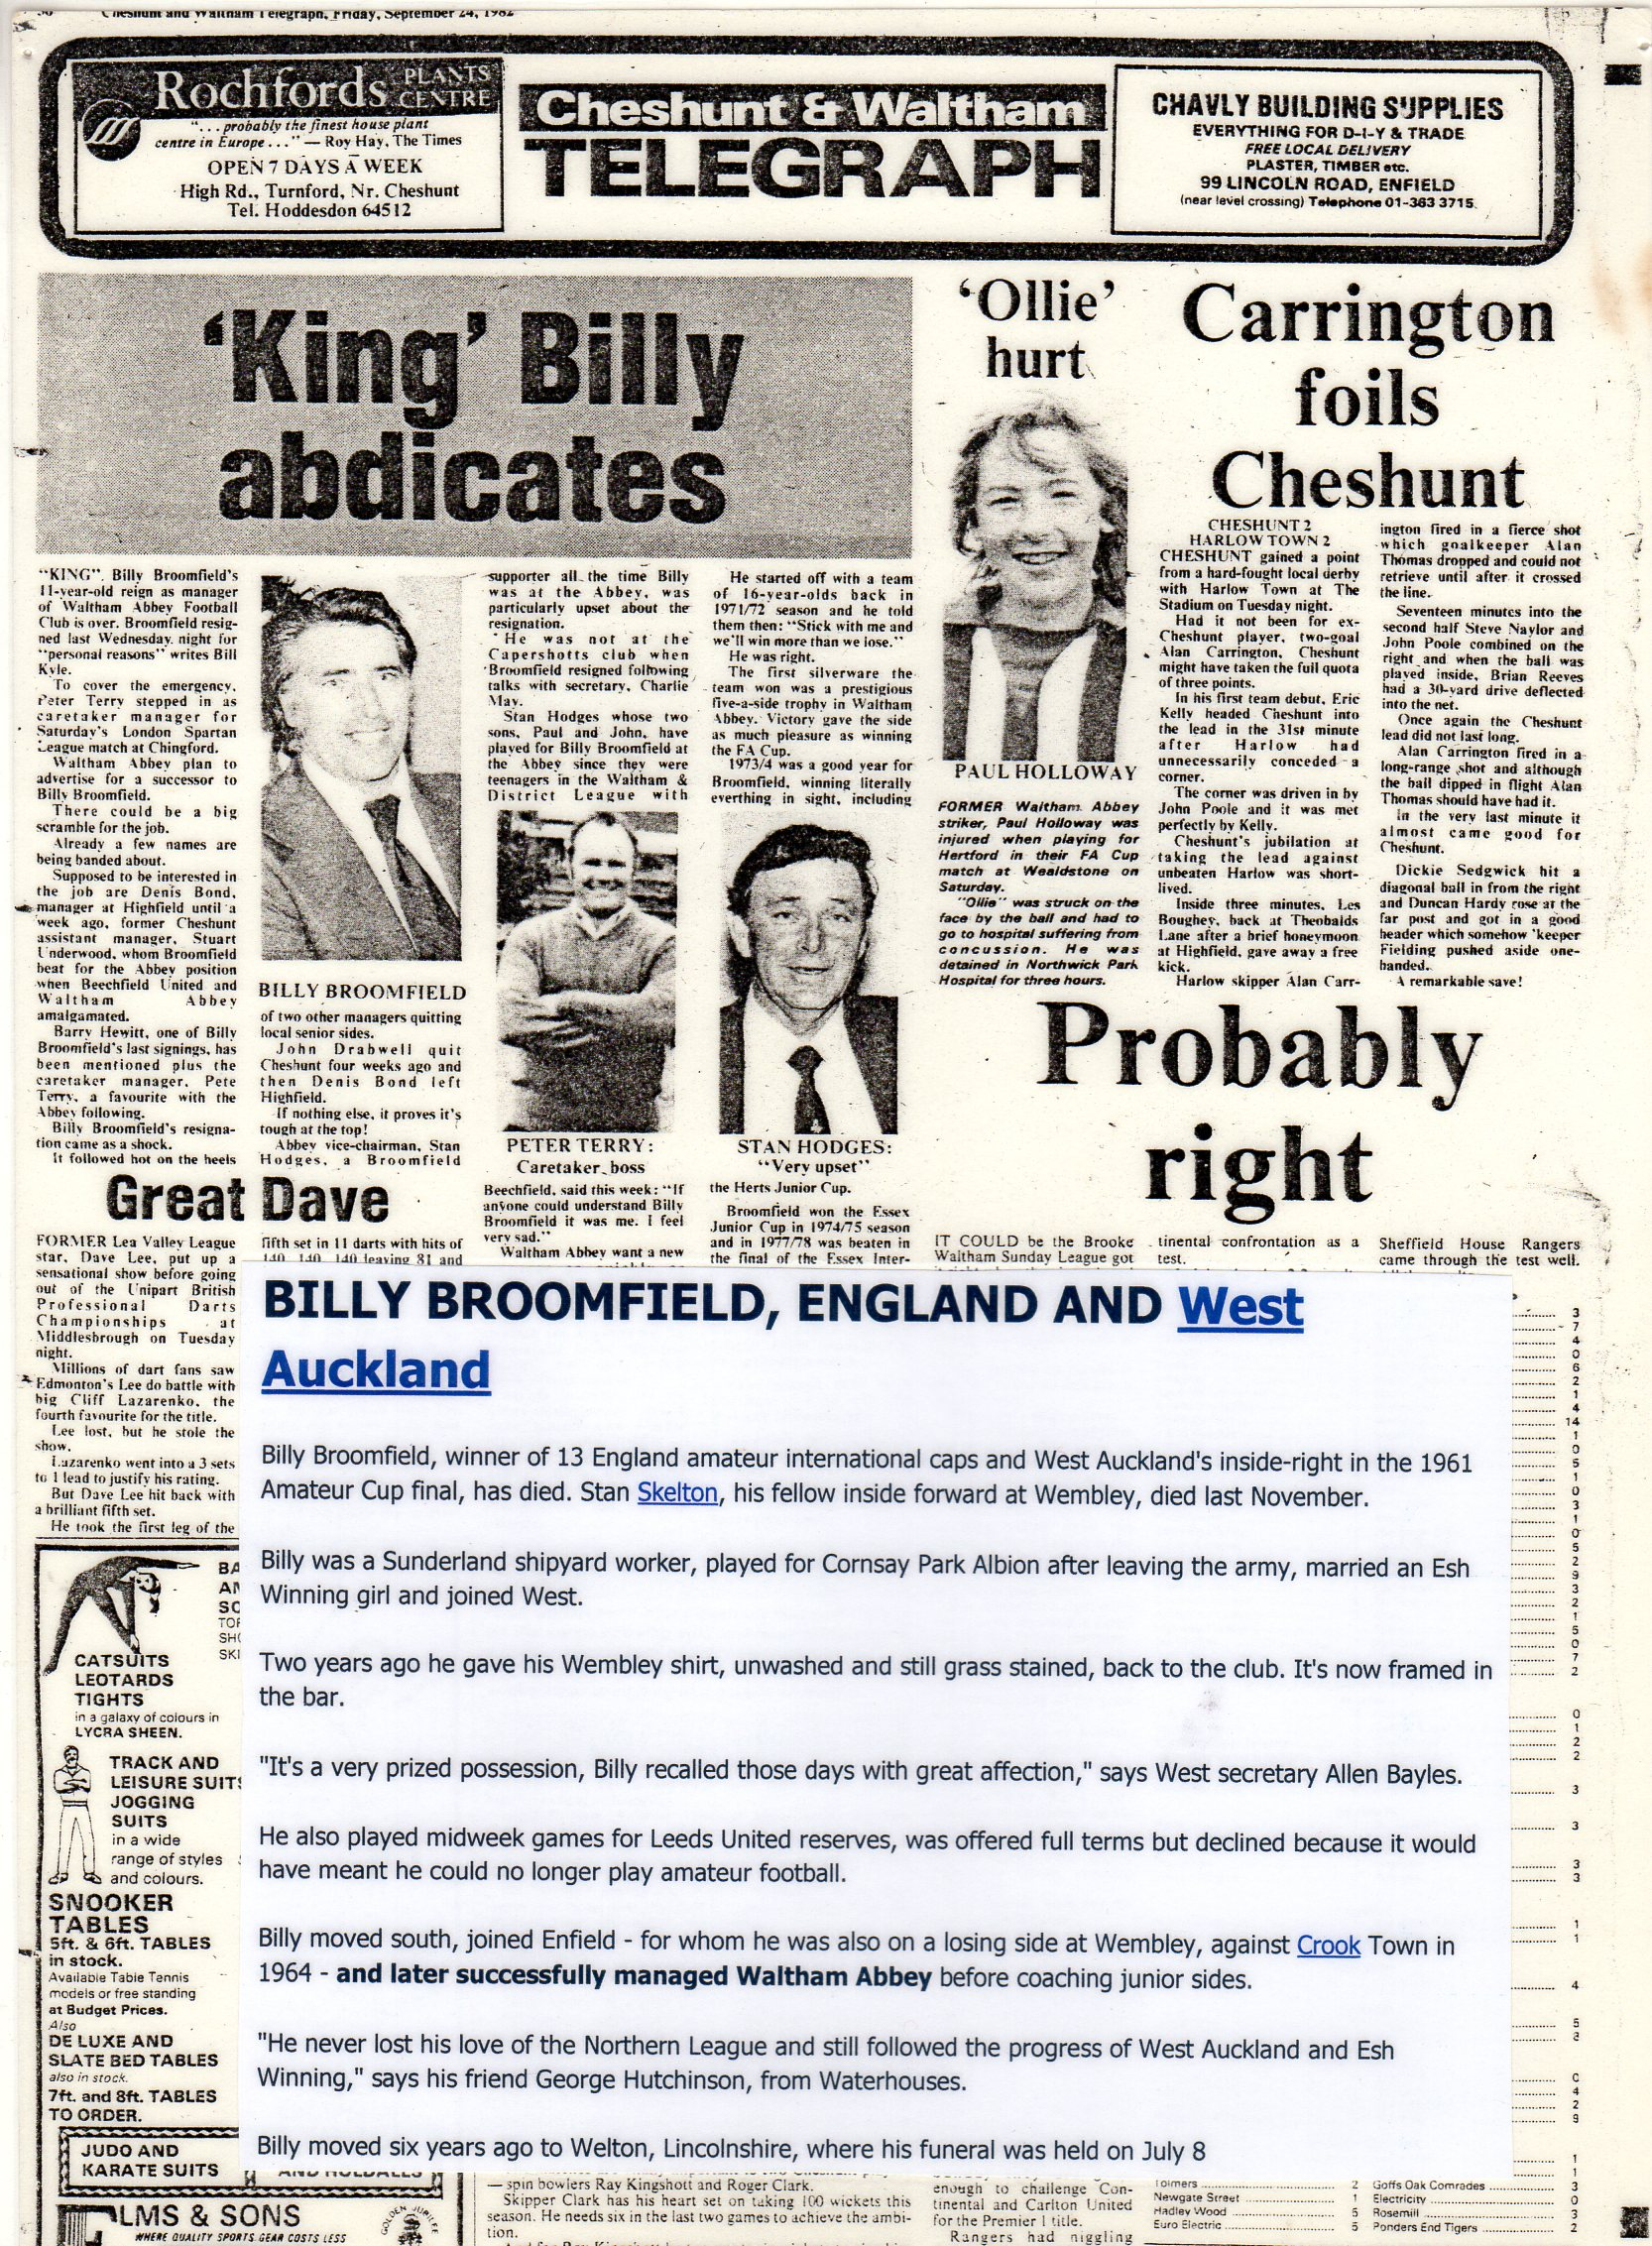 King Billy Abdicates